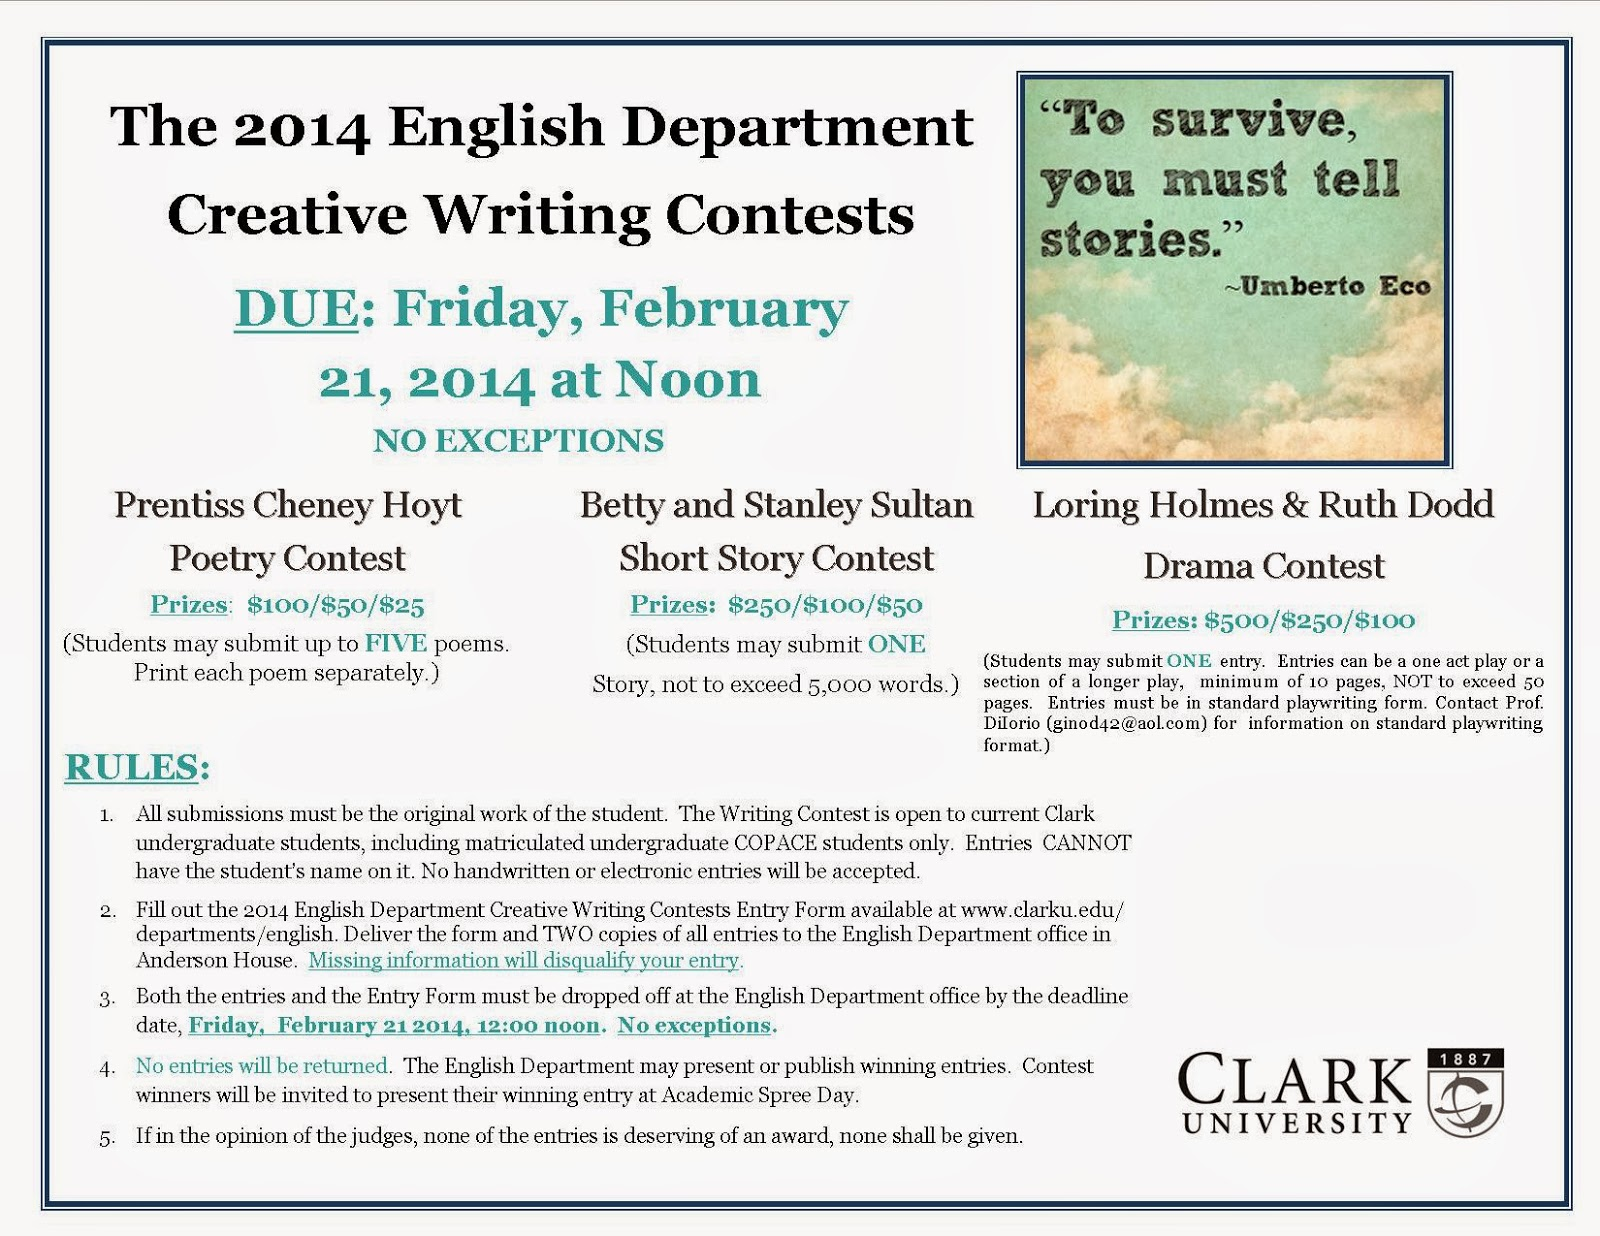 free creative writing contests 2014 William faulkner-williamwisdom creative writing competition the 2014 competition opens january 1 and accepts entries in eight categories: novel, novella, book-length narrative non-fiction, novel-in-progress, short story, essay, poetry, and short story by a high school student.